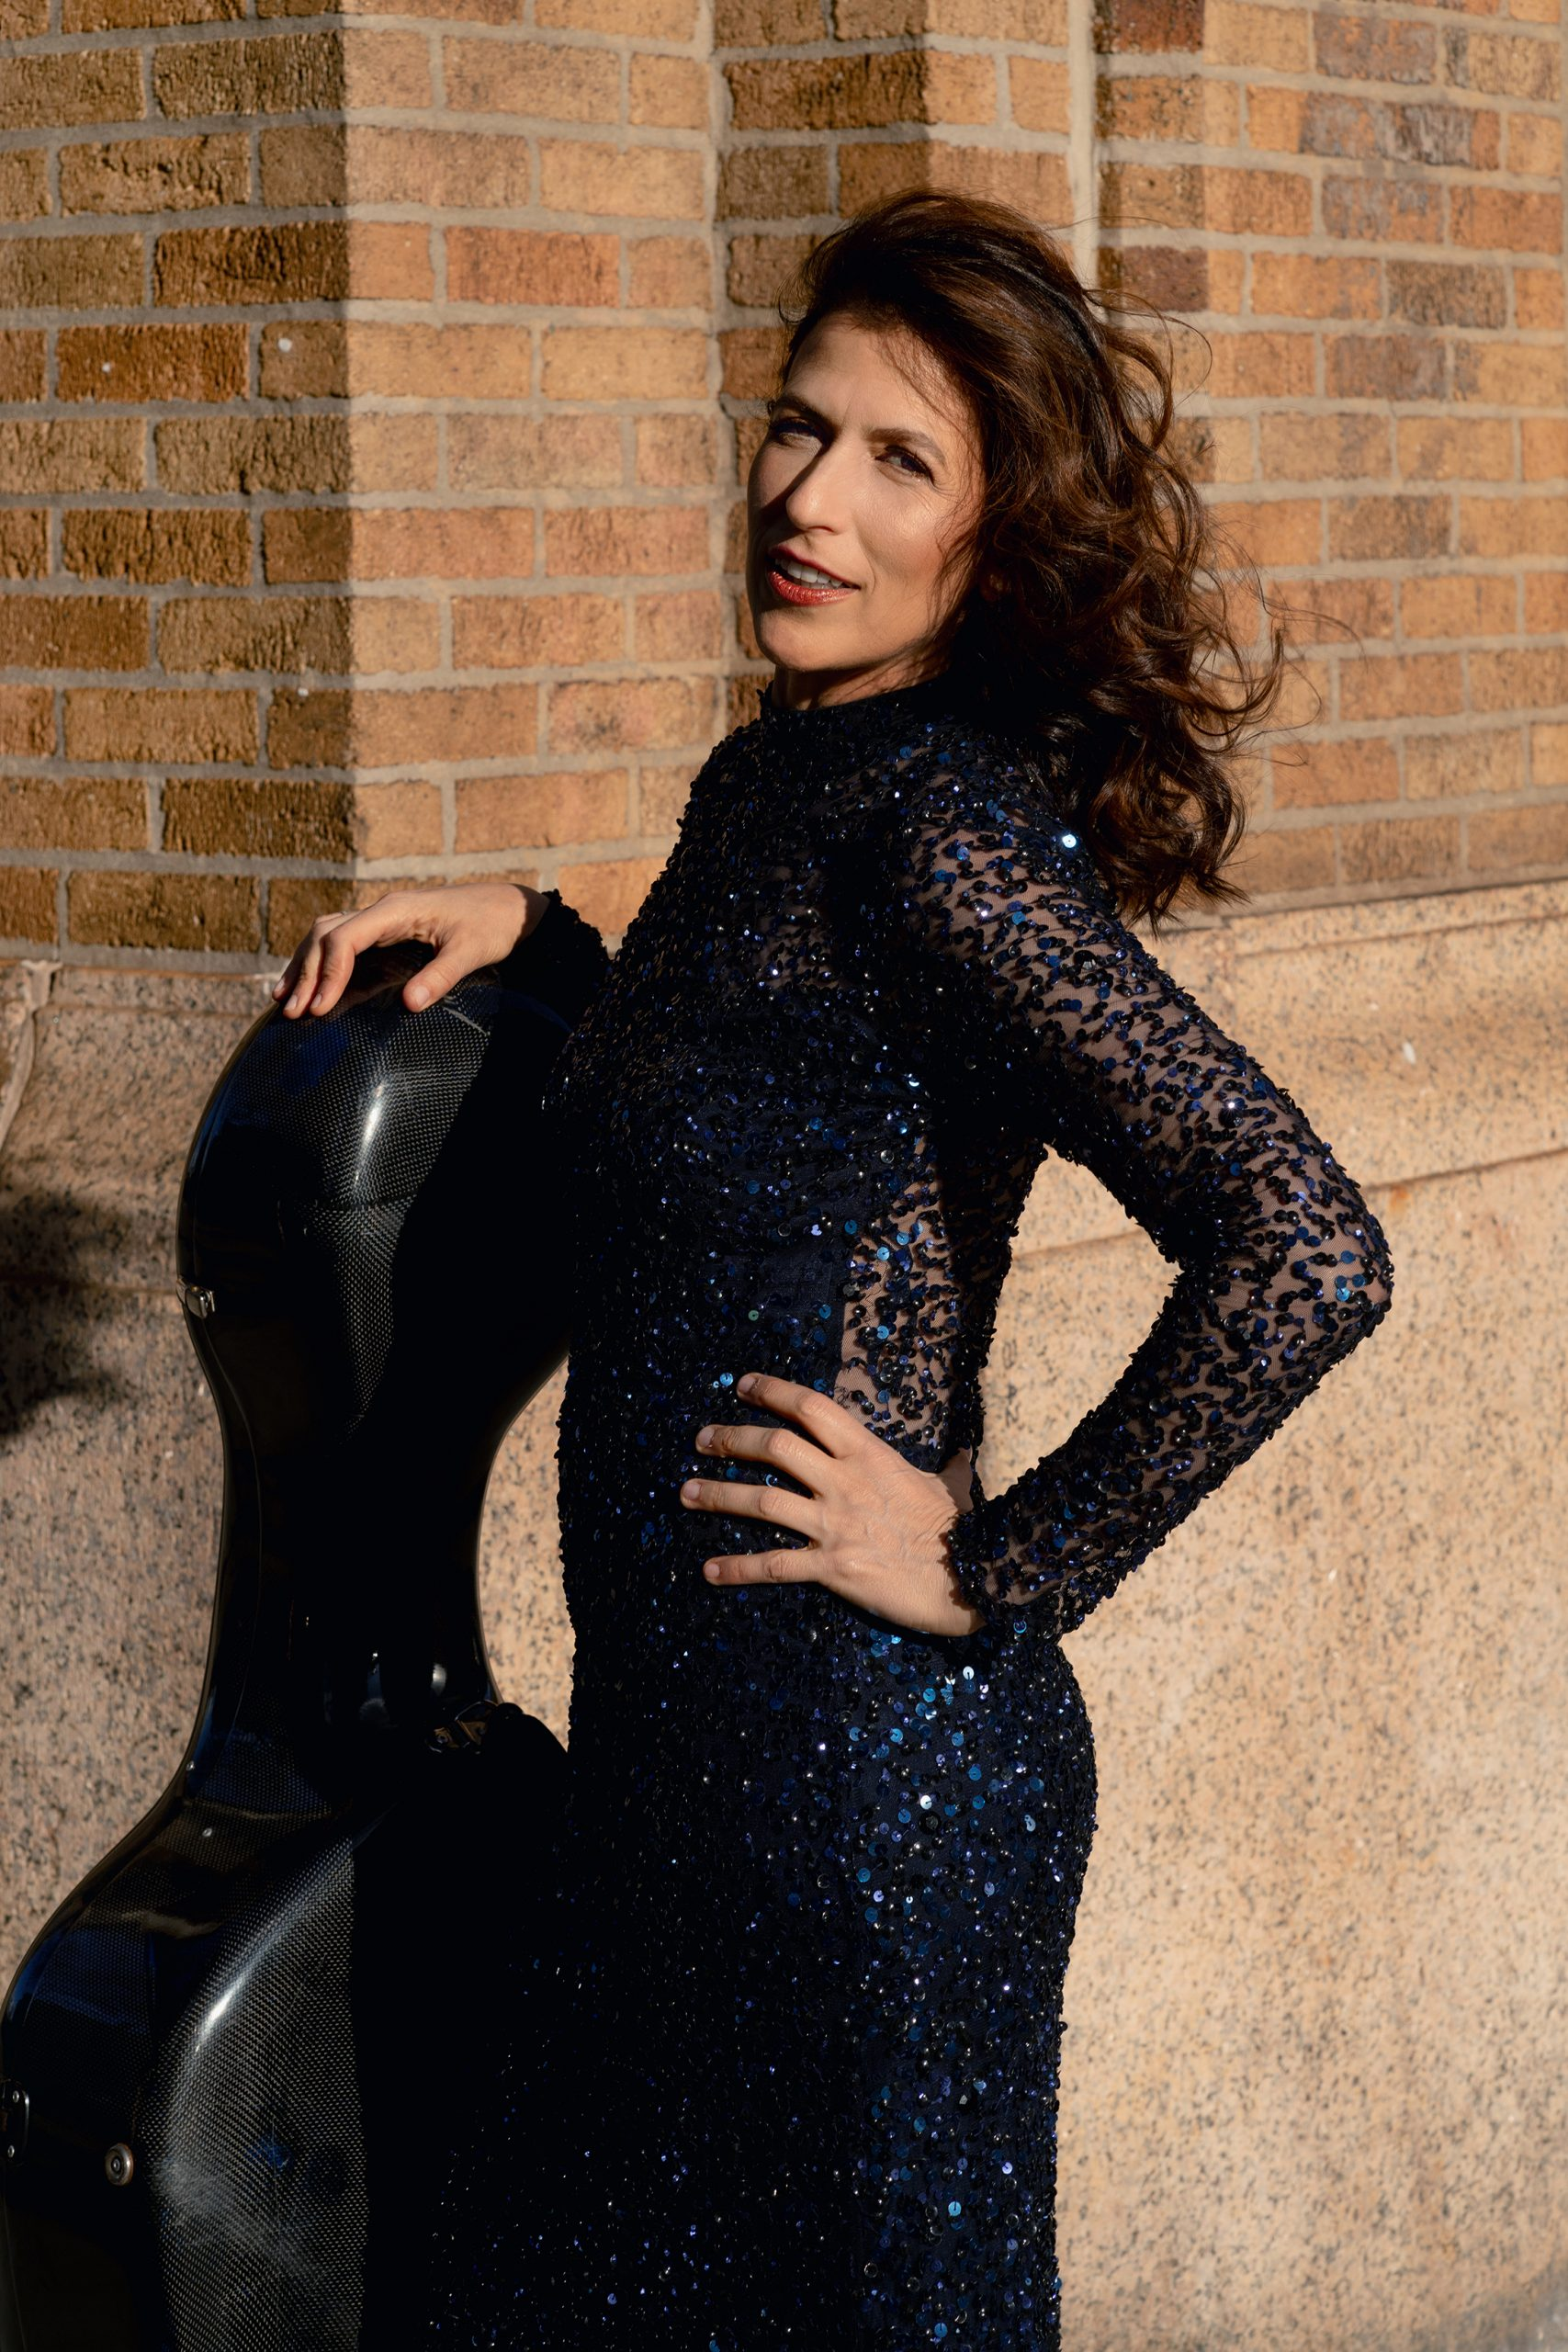 Inbal Segev stands in front of a brick wall wearing a blue sequined gown, with her cello case leaning against her.